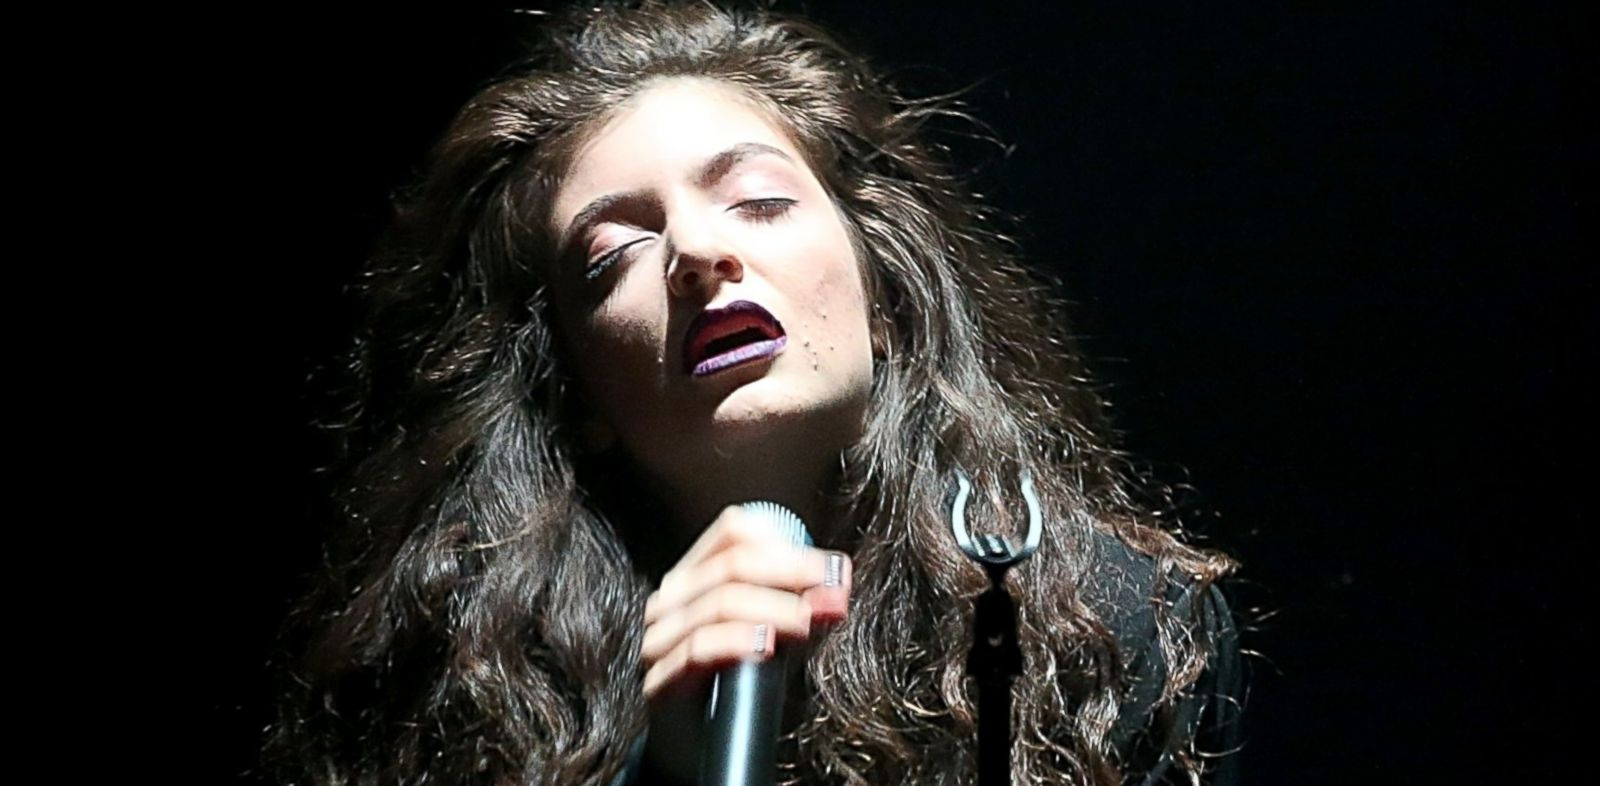 PHOTO: Lorde performs at the Austin Music Hall on Mar. 3, 2014 in Austin, Texas.